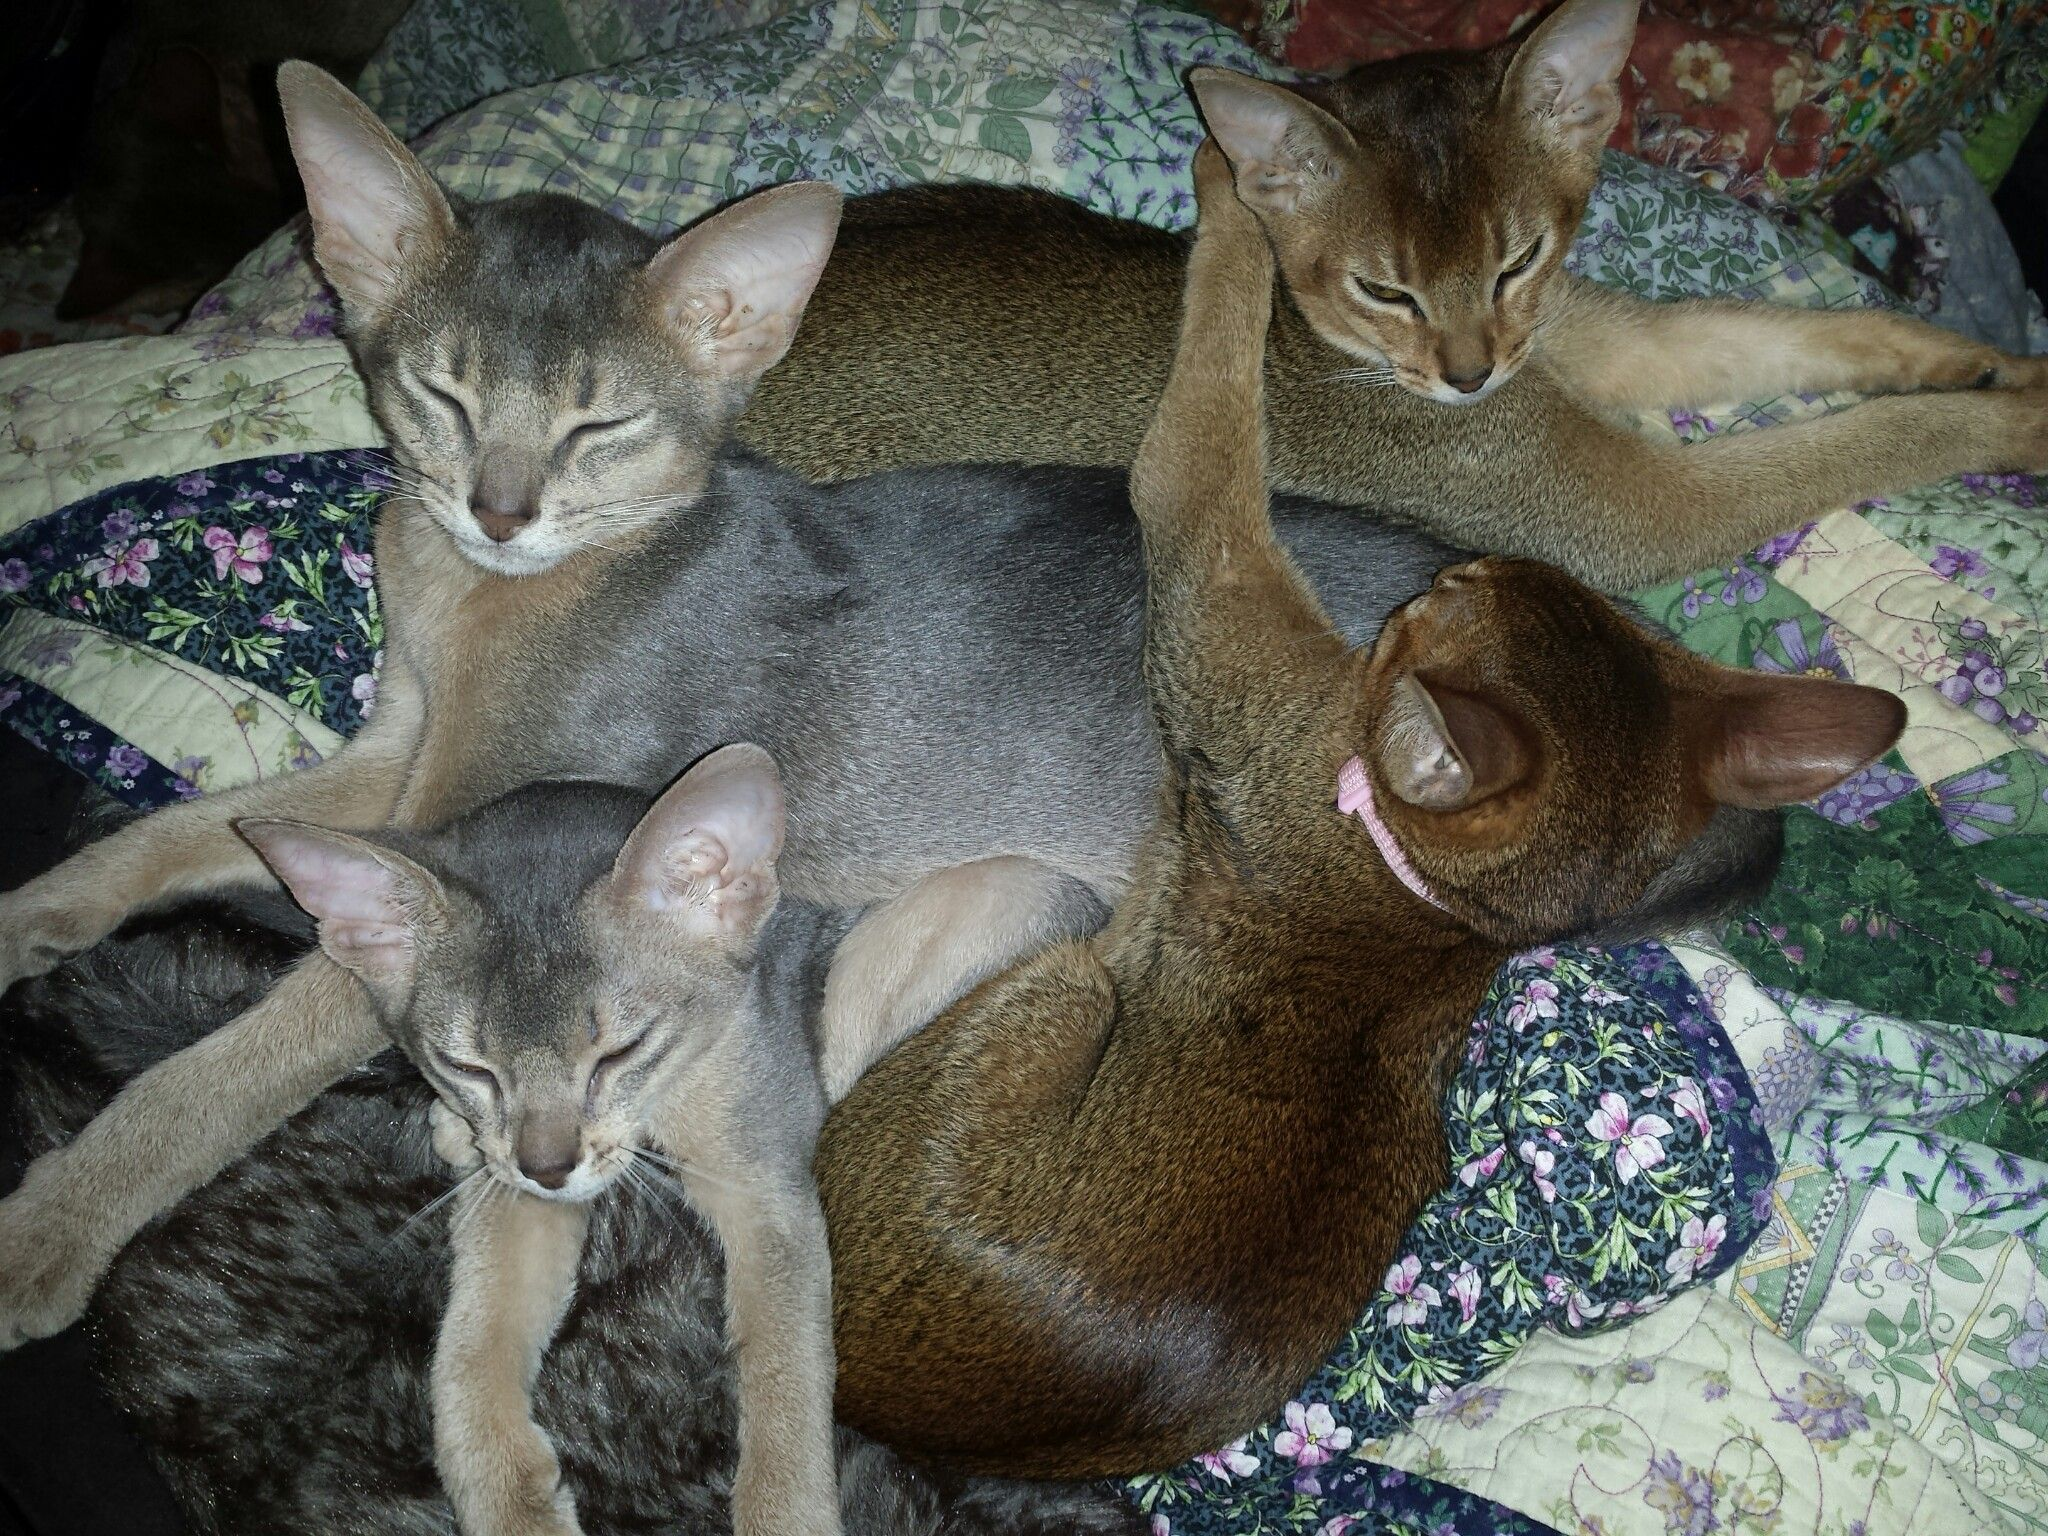 Pin by Sheryl Harmer Landstrom on My Abyssinian Life | Pinterest ...